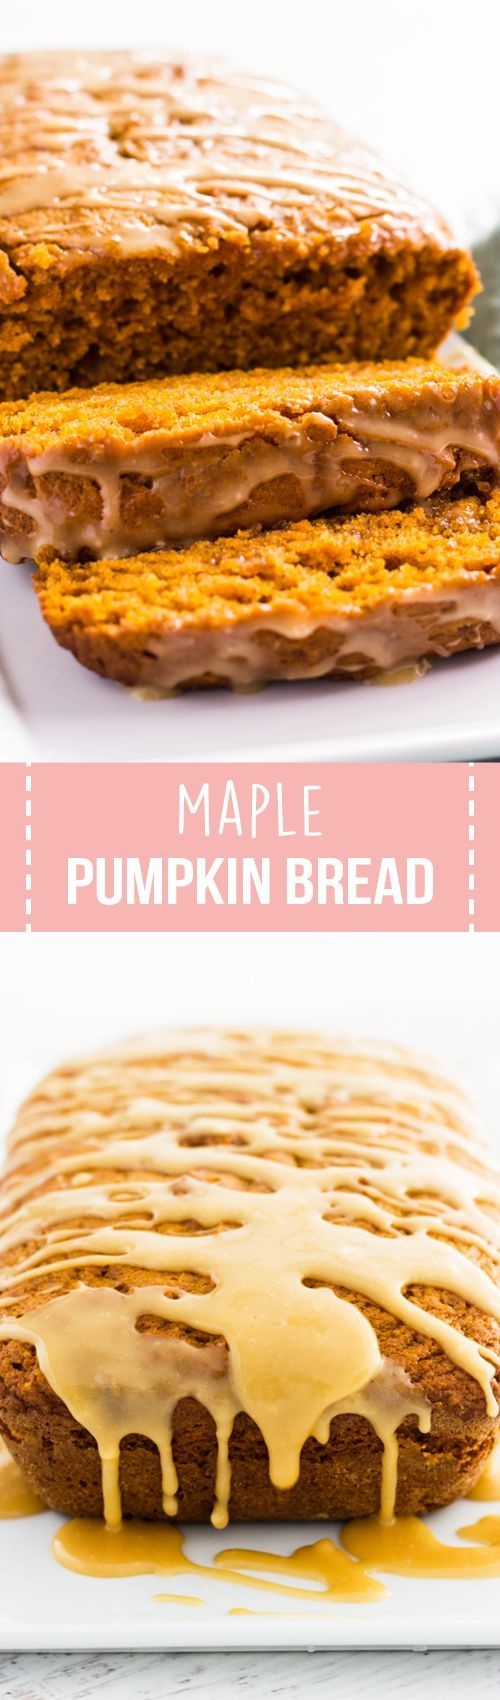 Maple pumpkin bread is filled with the flavors of fall. Topped with a maple syrup glaze and filled with spices, each slice is unbelievably good!